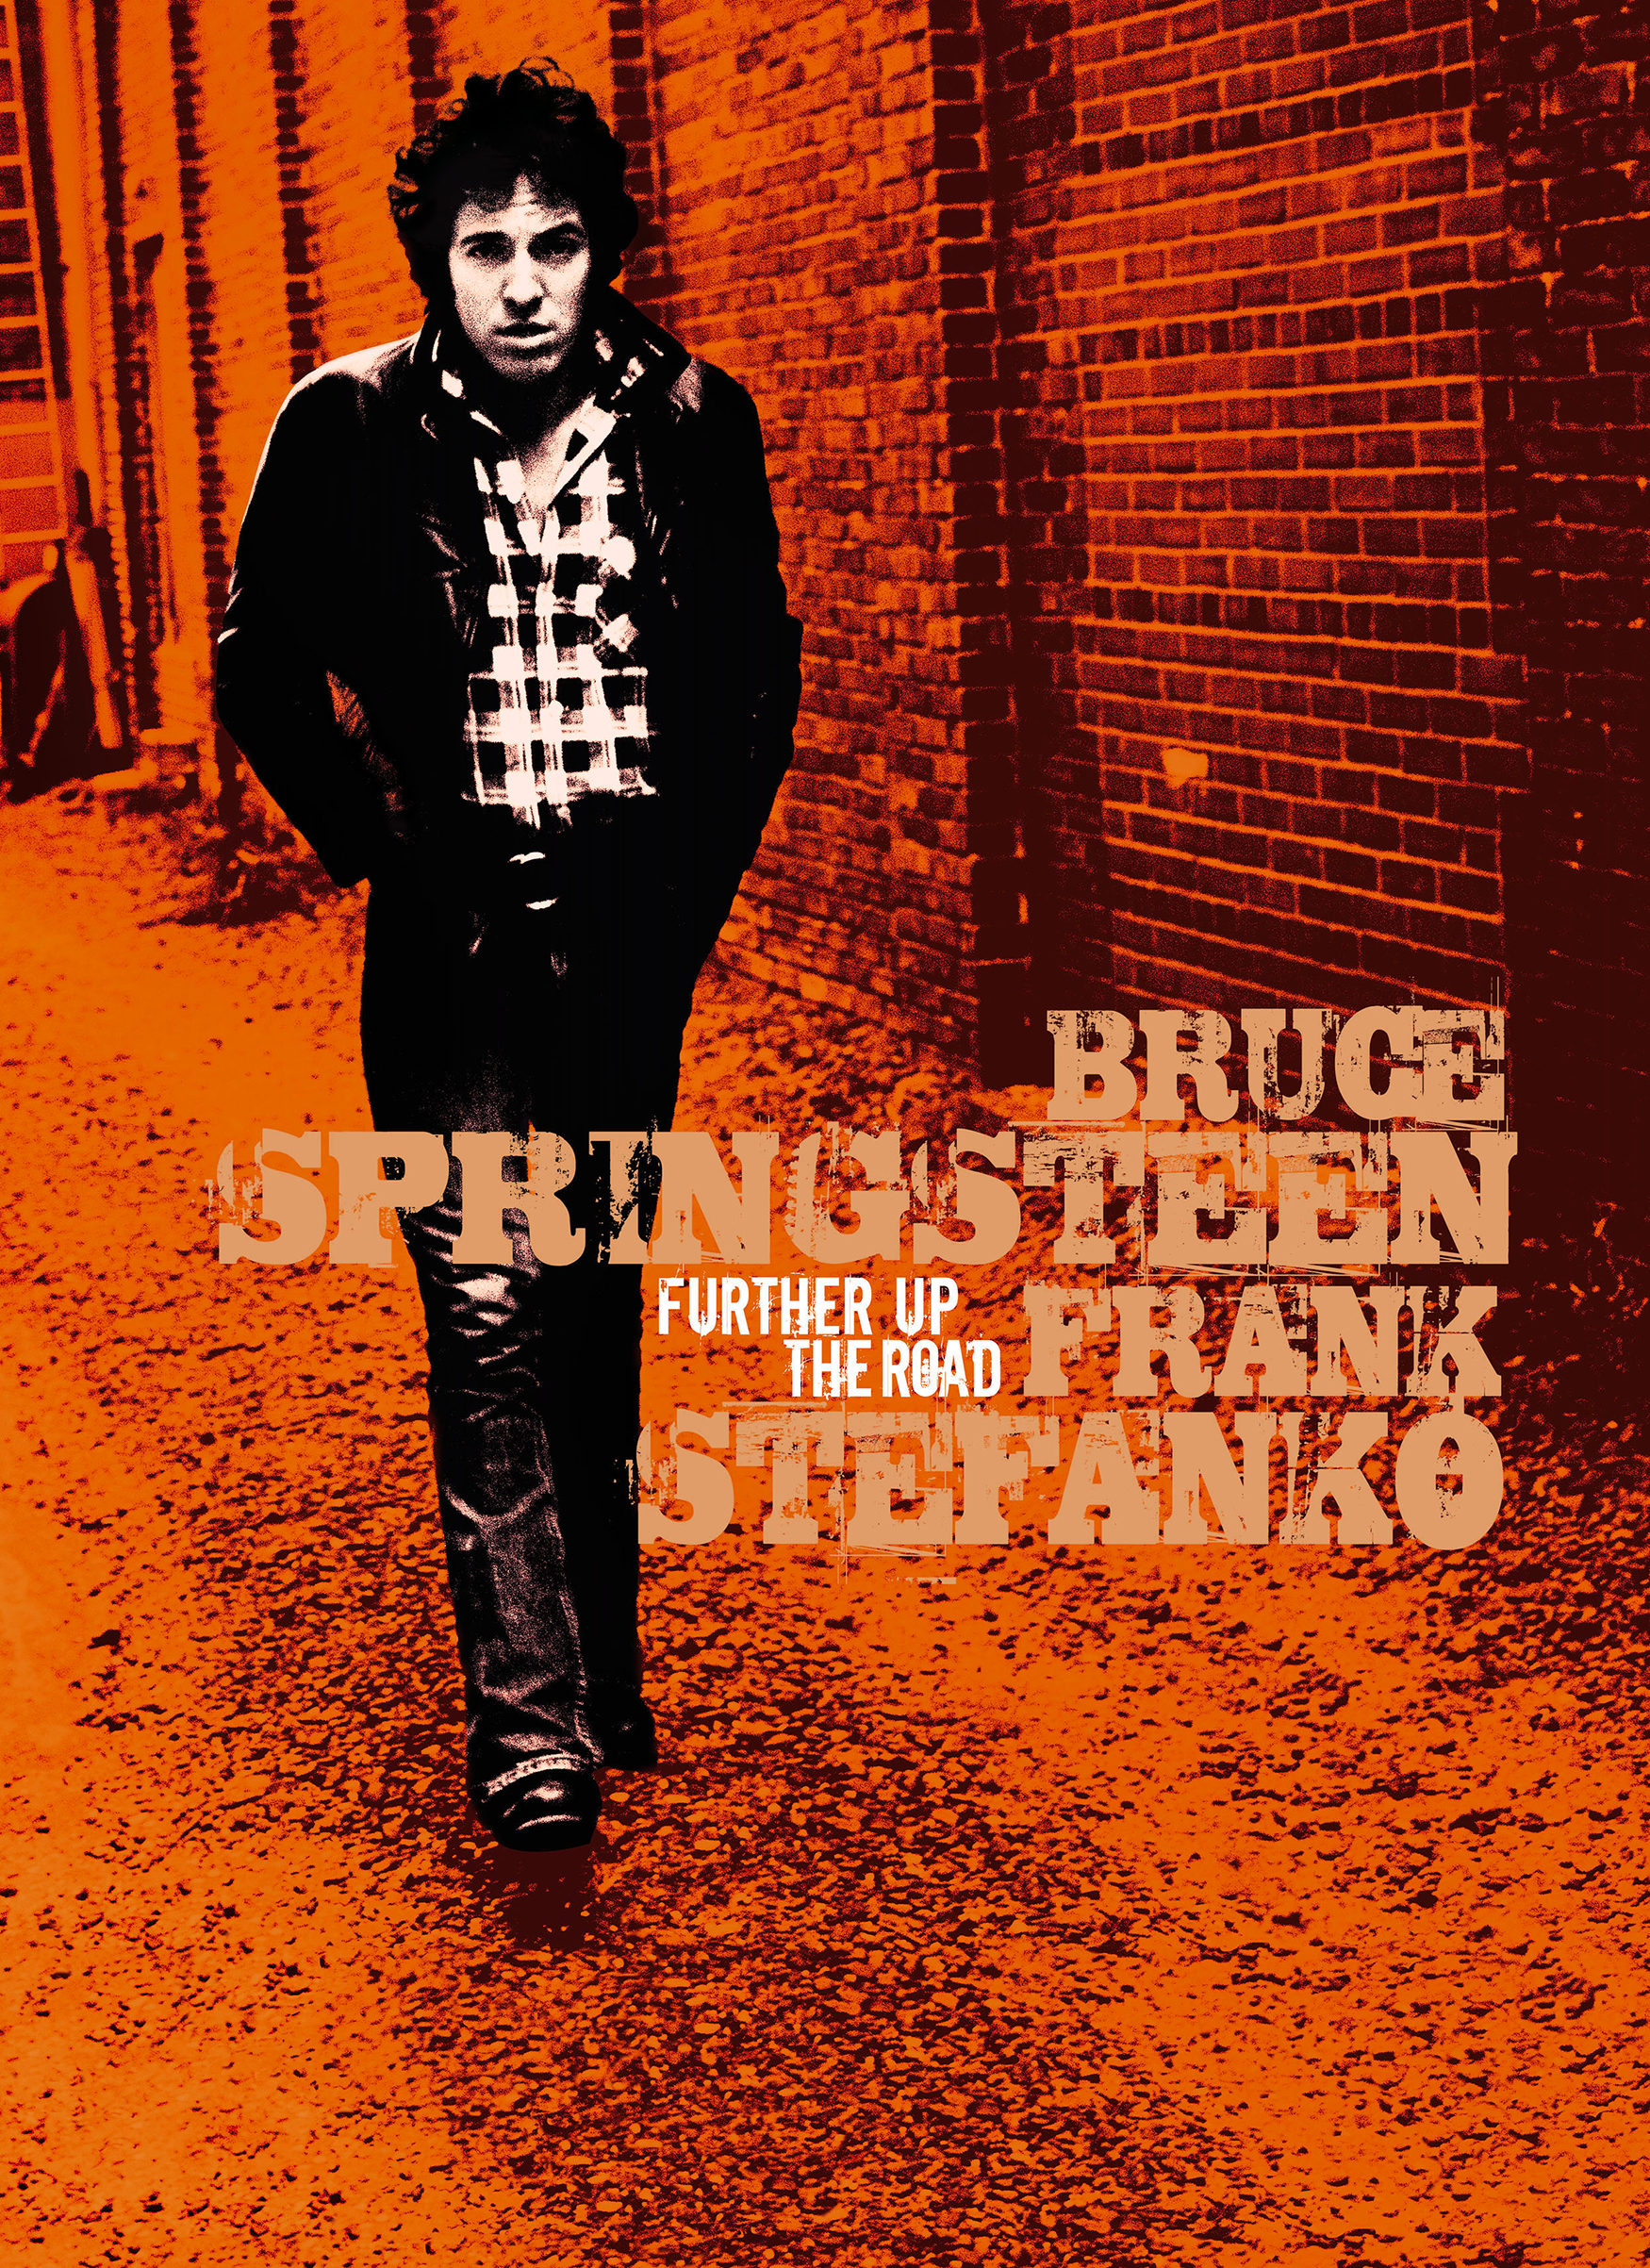 Bruce Springsteen. Further Up The Road is published by Wall of Sound Editions.